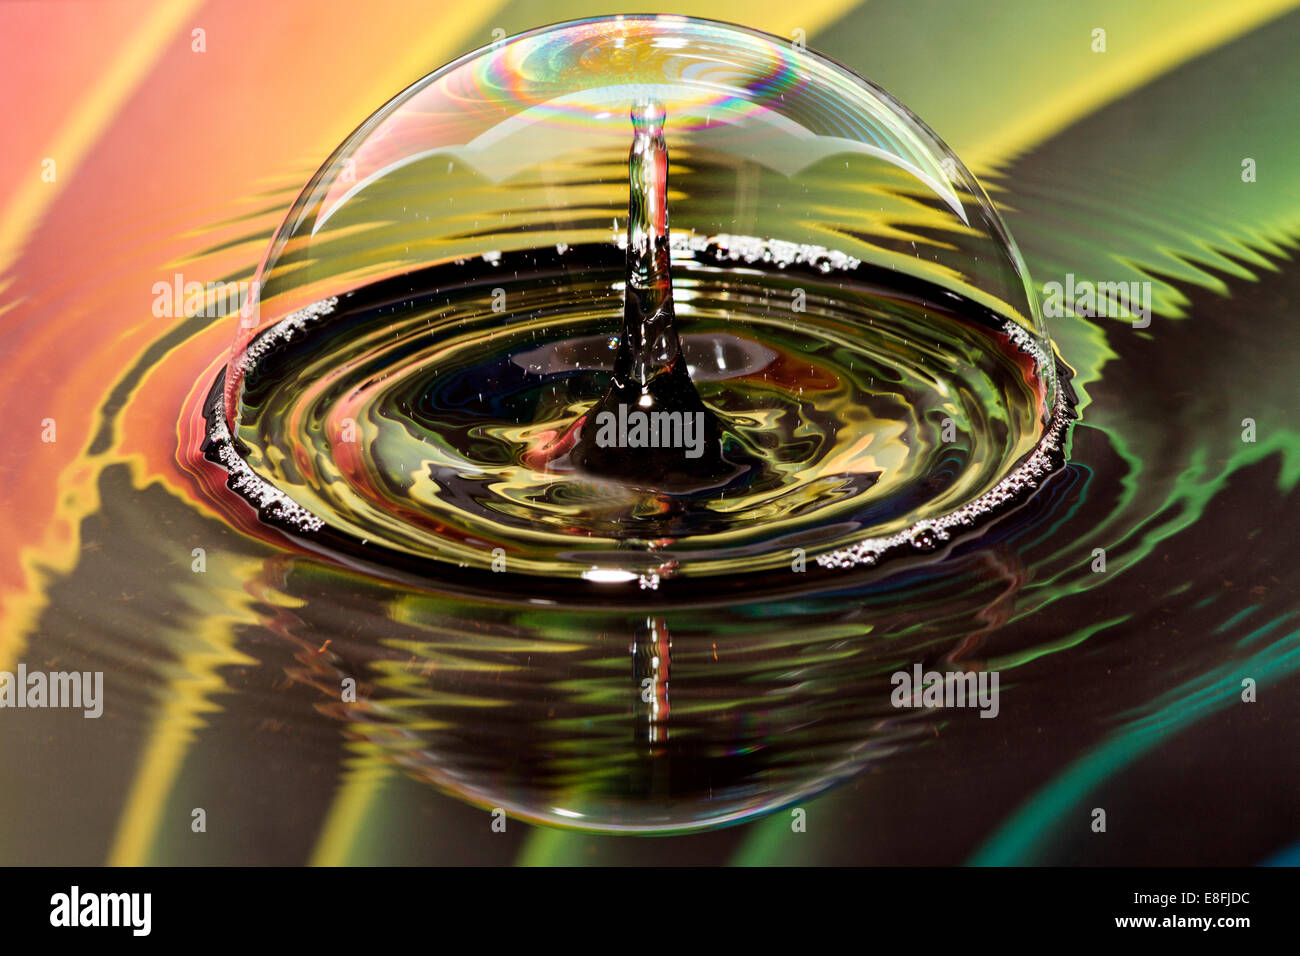 Water drops on bubble with rainbow background - Stock Image